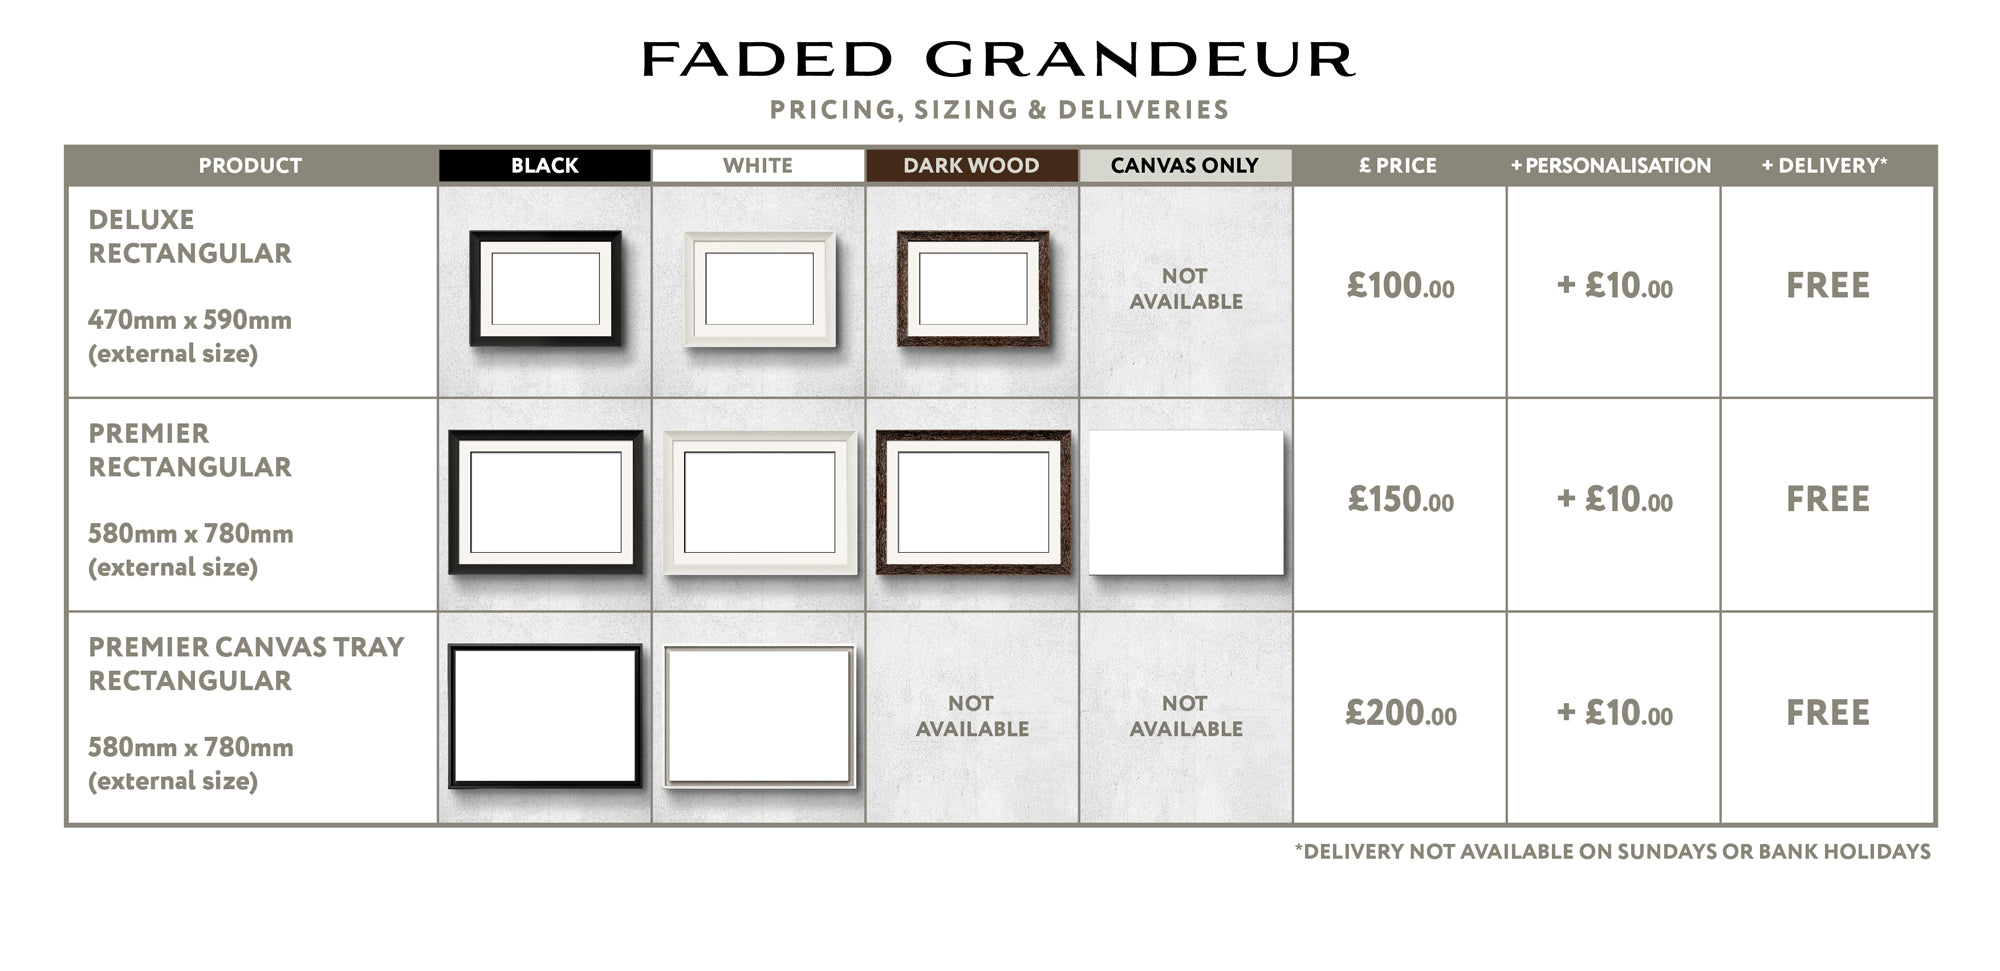 CHESHIRE - Faded Grandeur